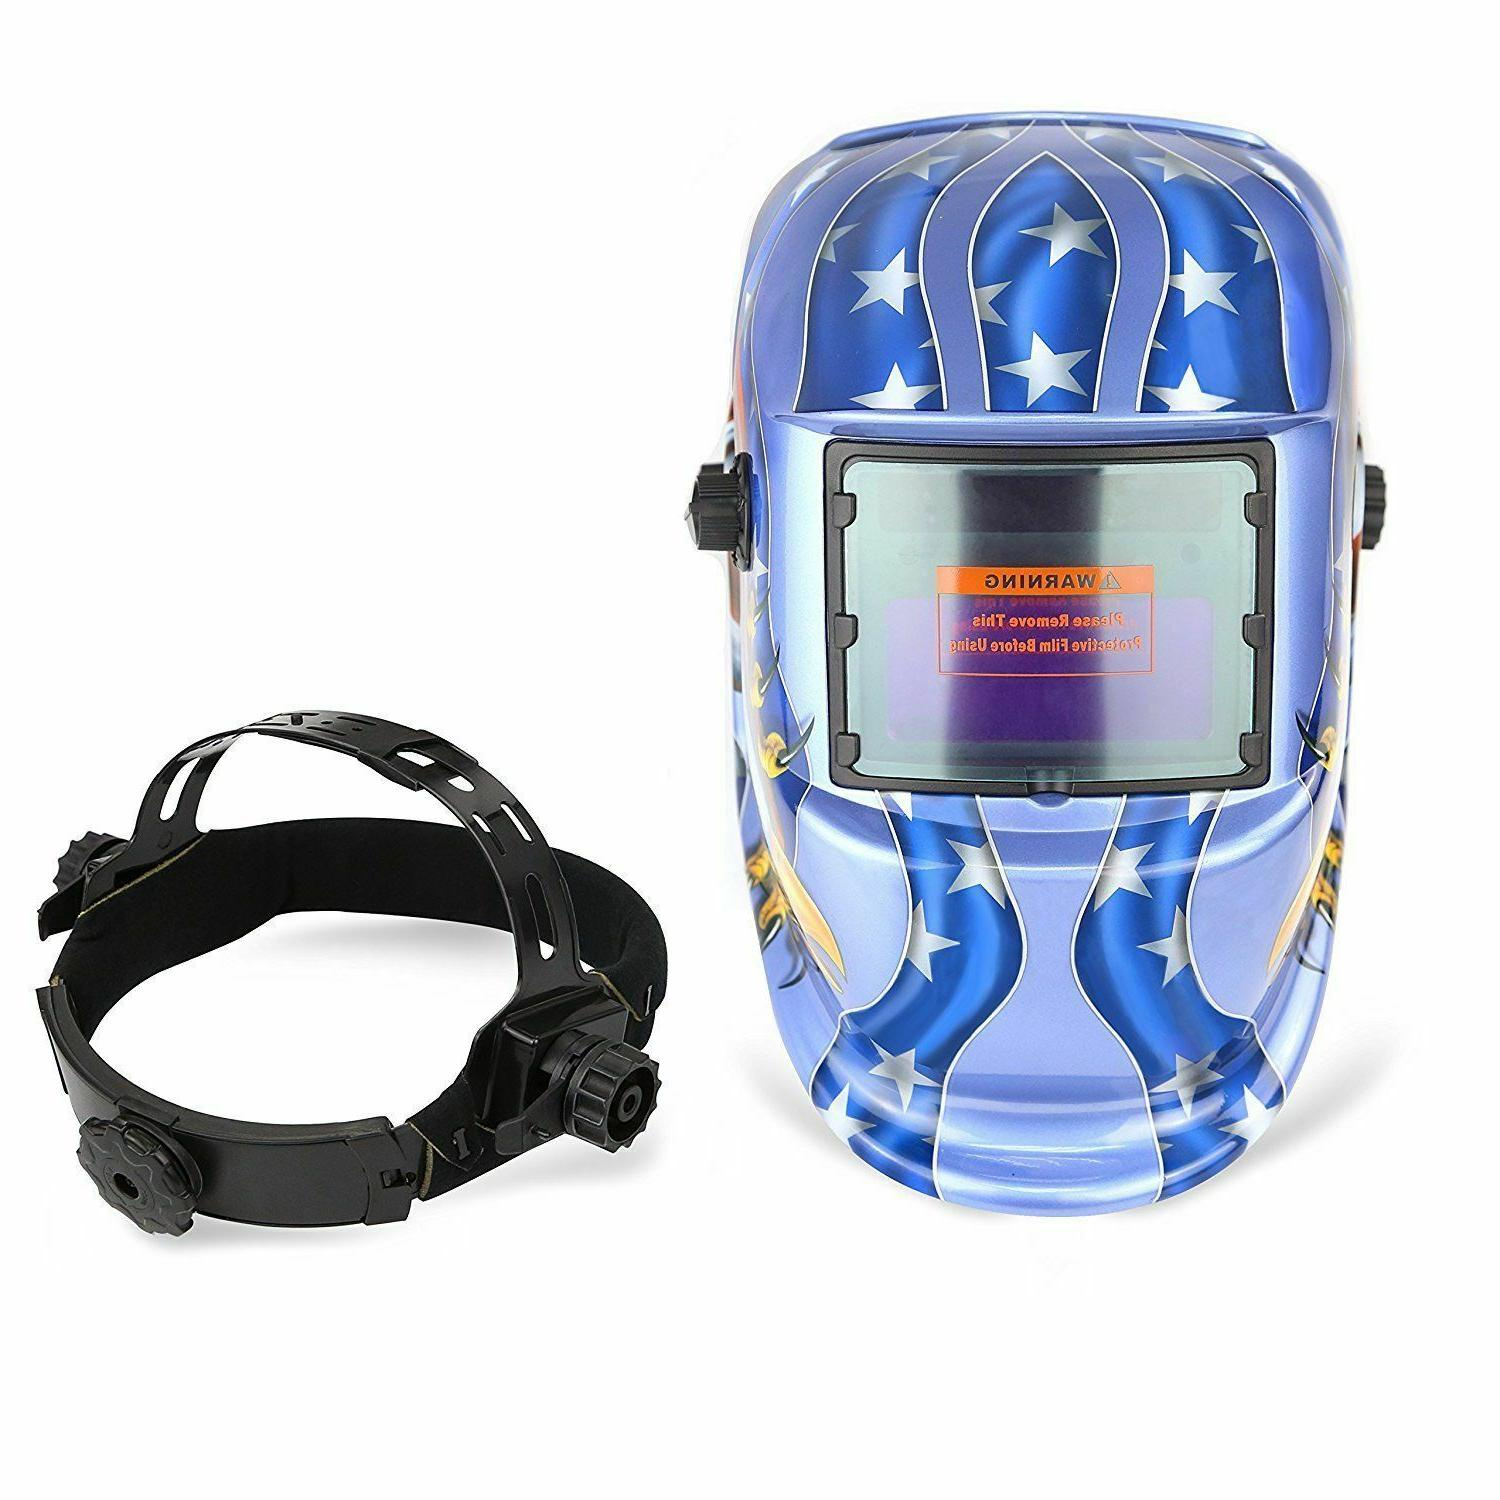 DEKO Darkening Welding Tig Mig Arc Mask